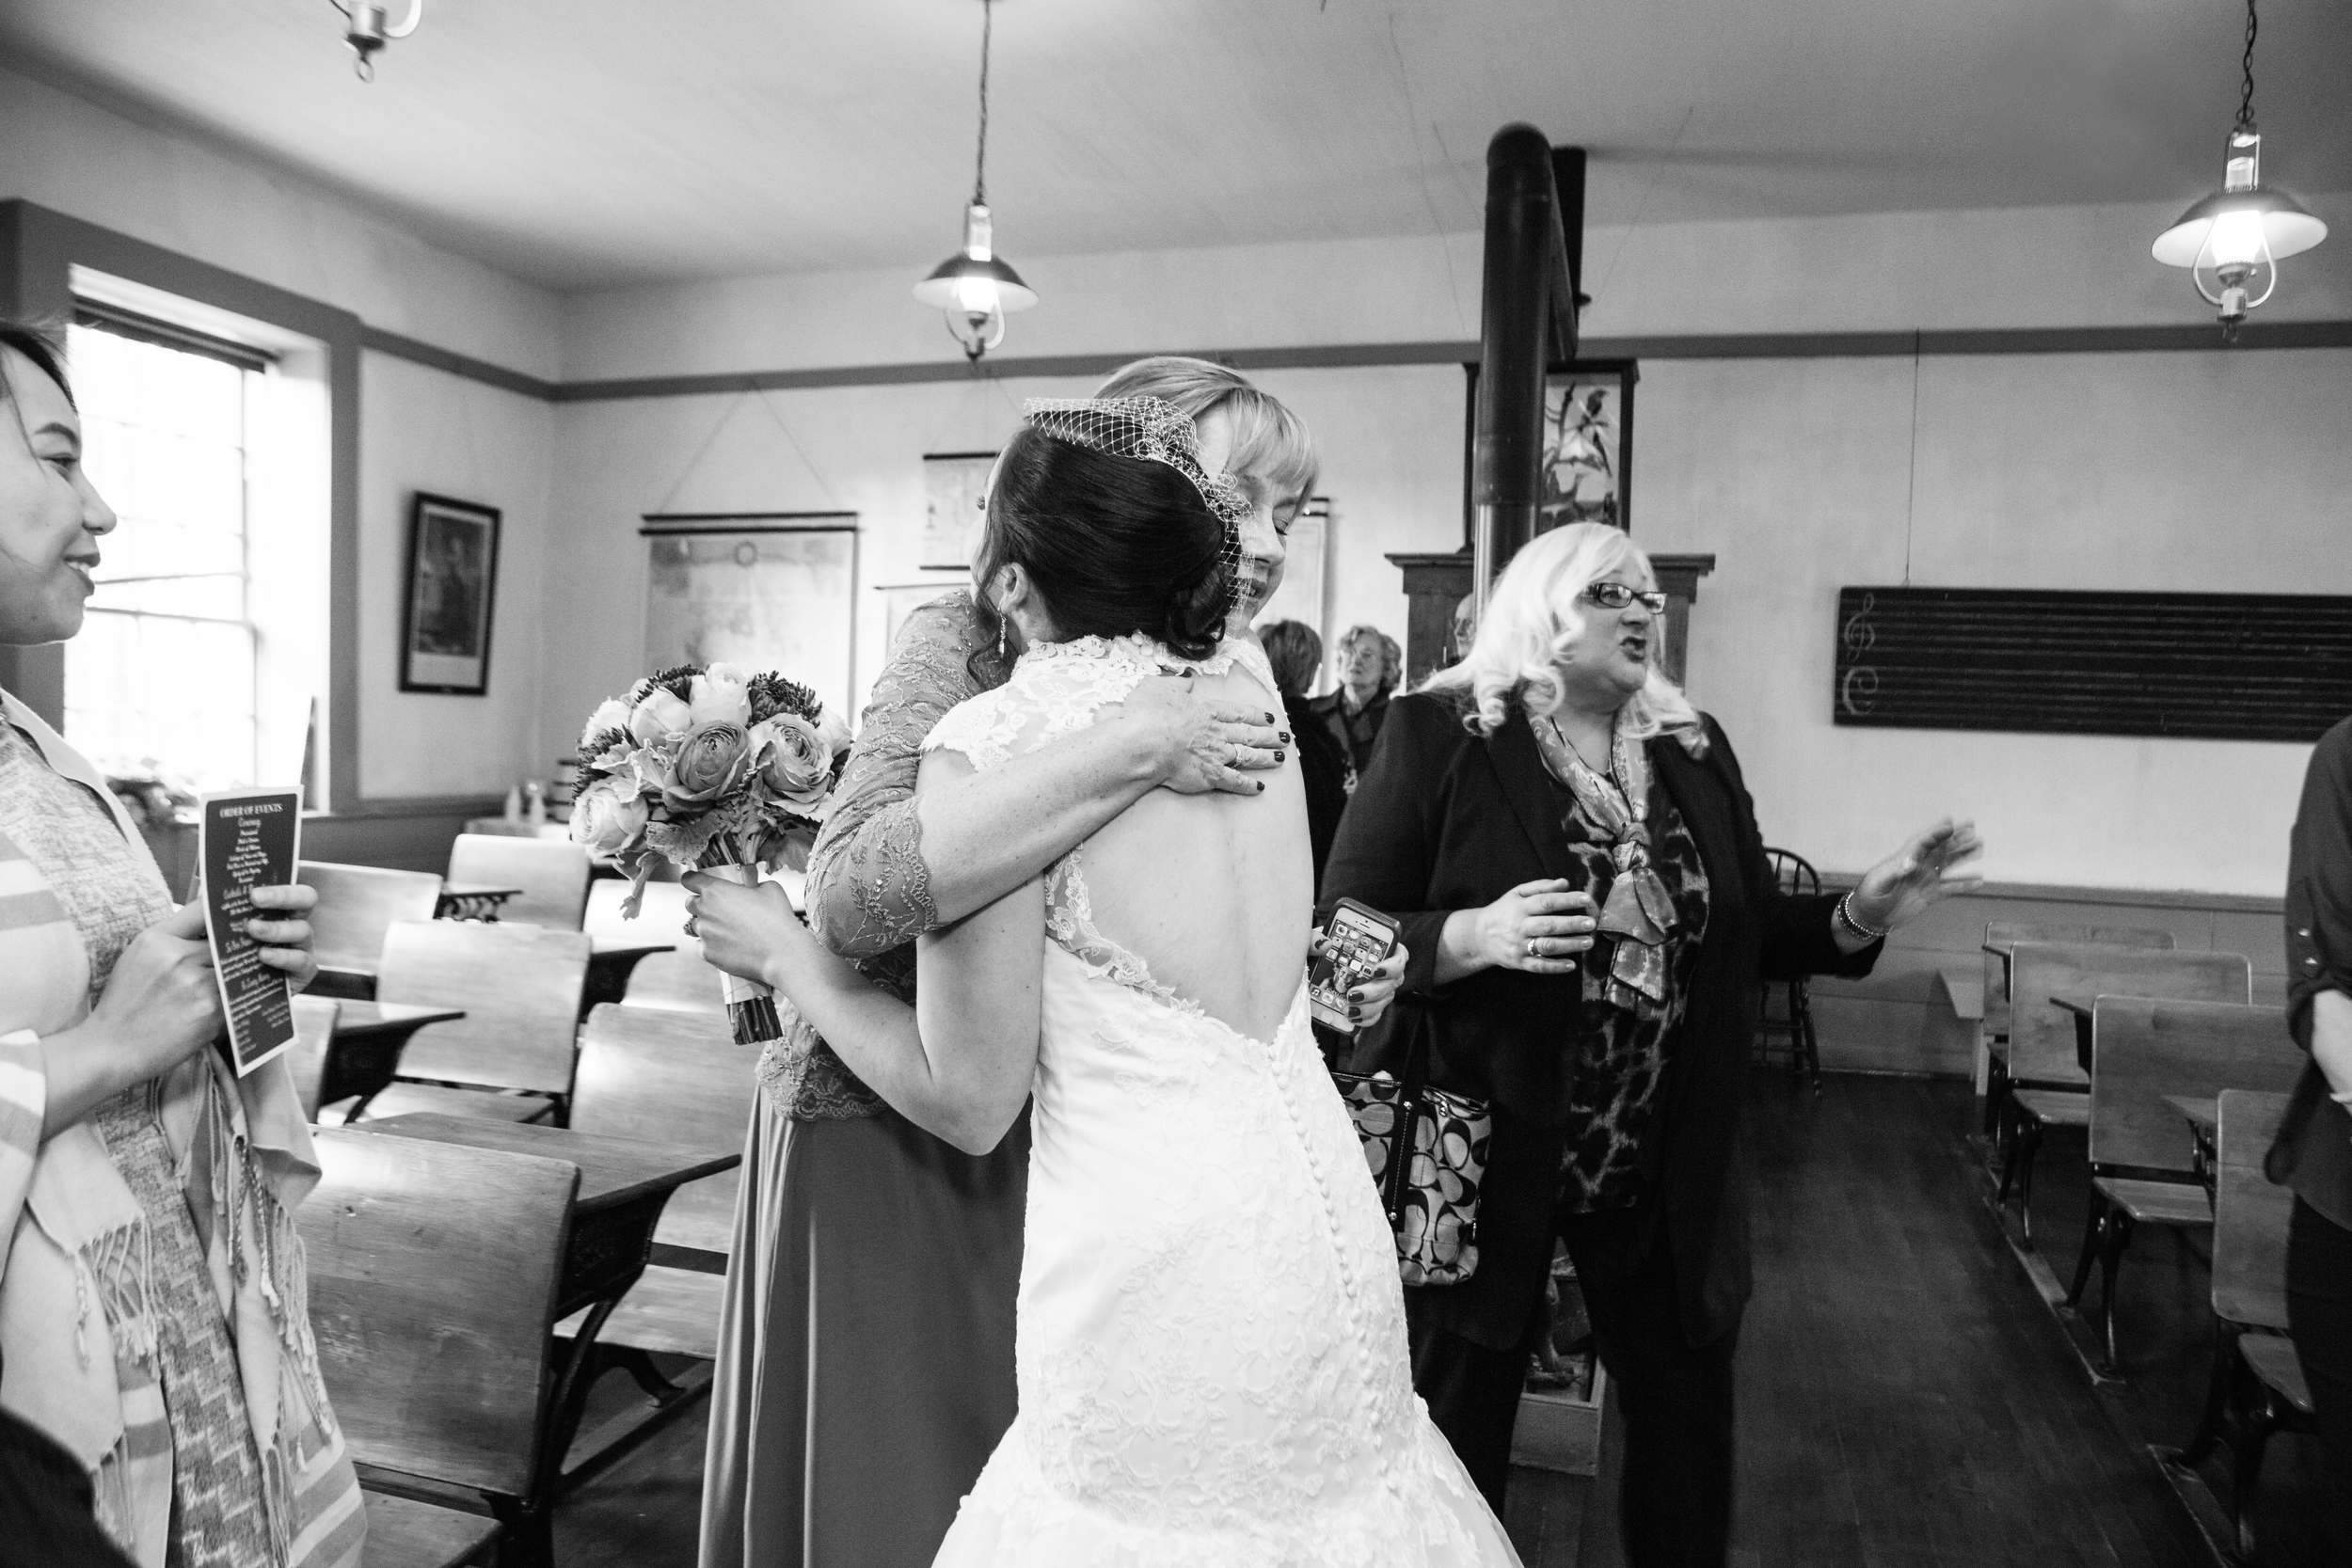 thiessen-ceremony-105-2-bw.jpg